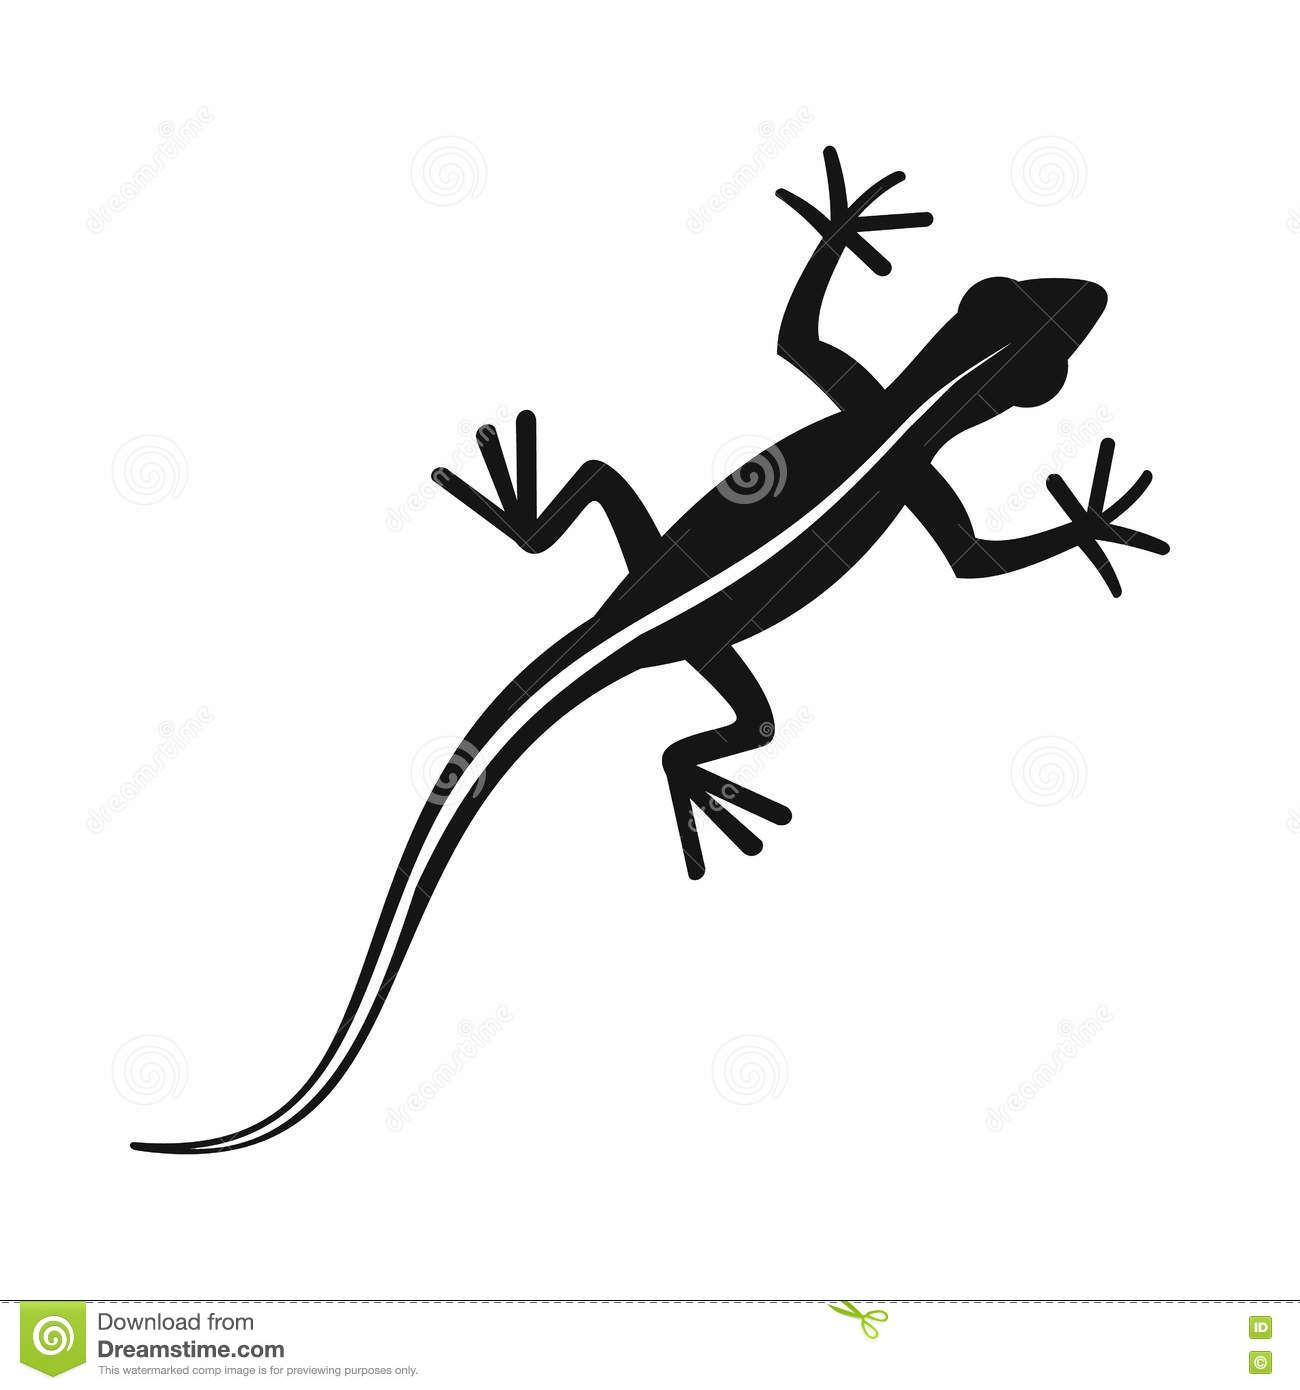 6c3f668e7d8d3 Lizard icon in simple style isolated vector illustration. Reptiles symbol